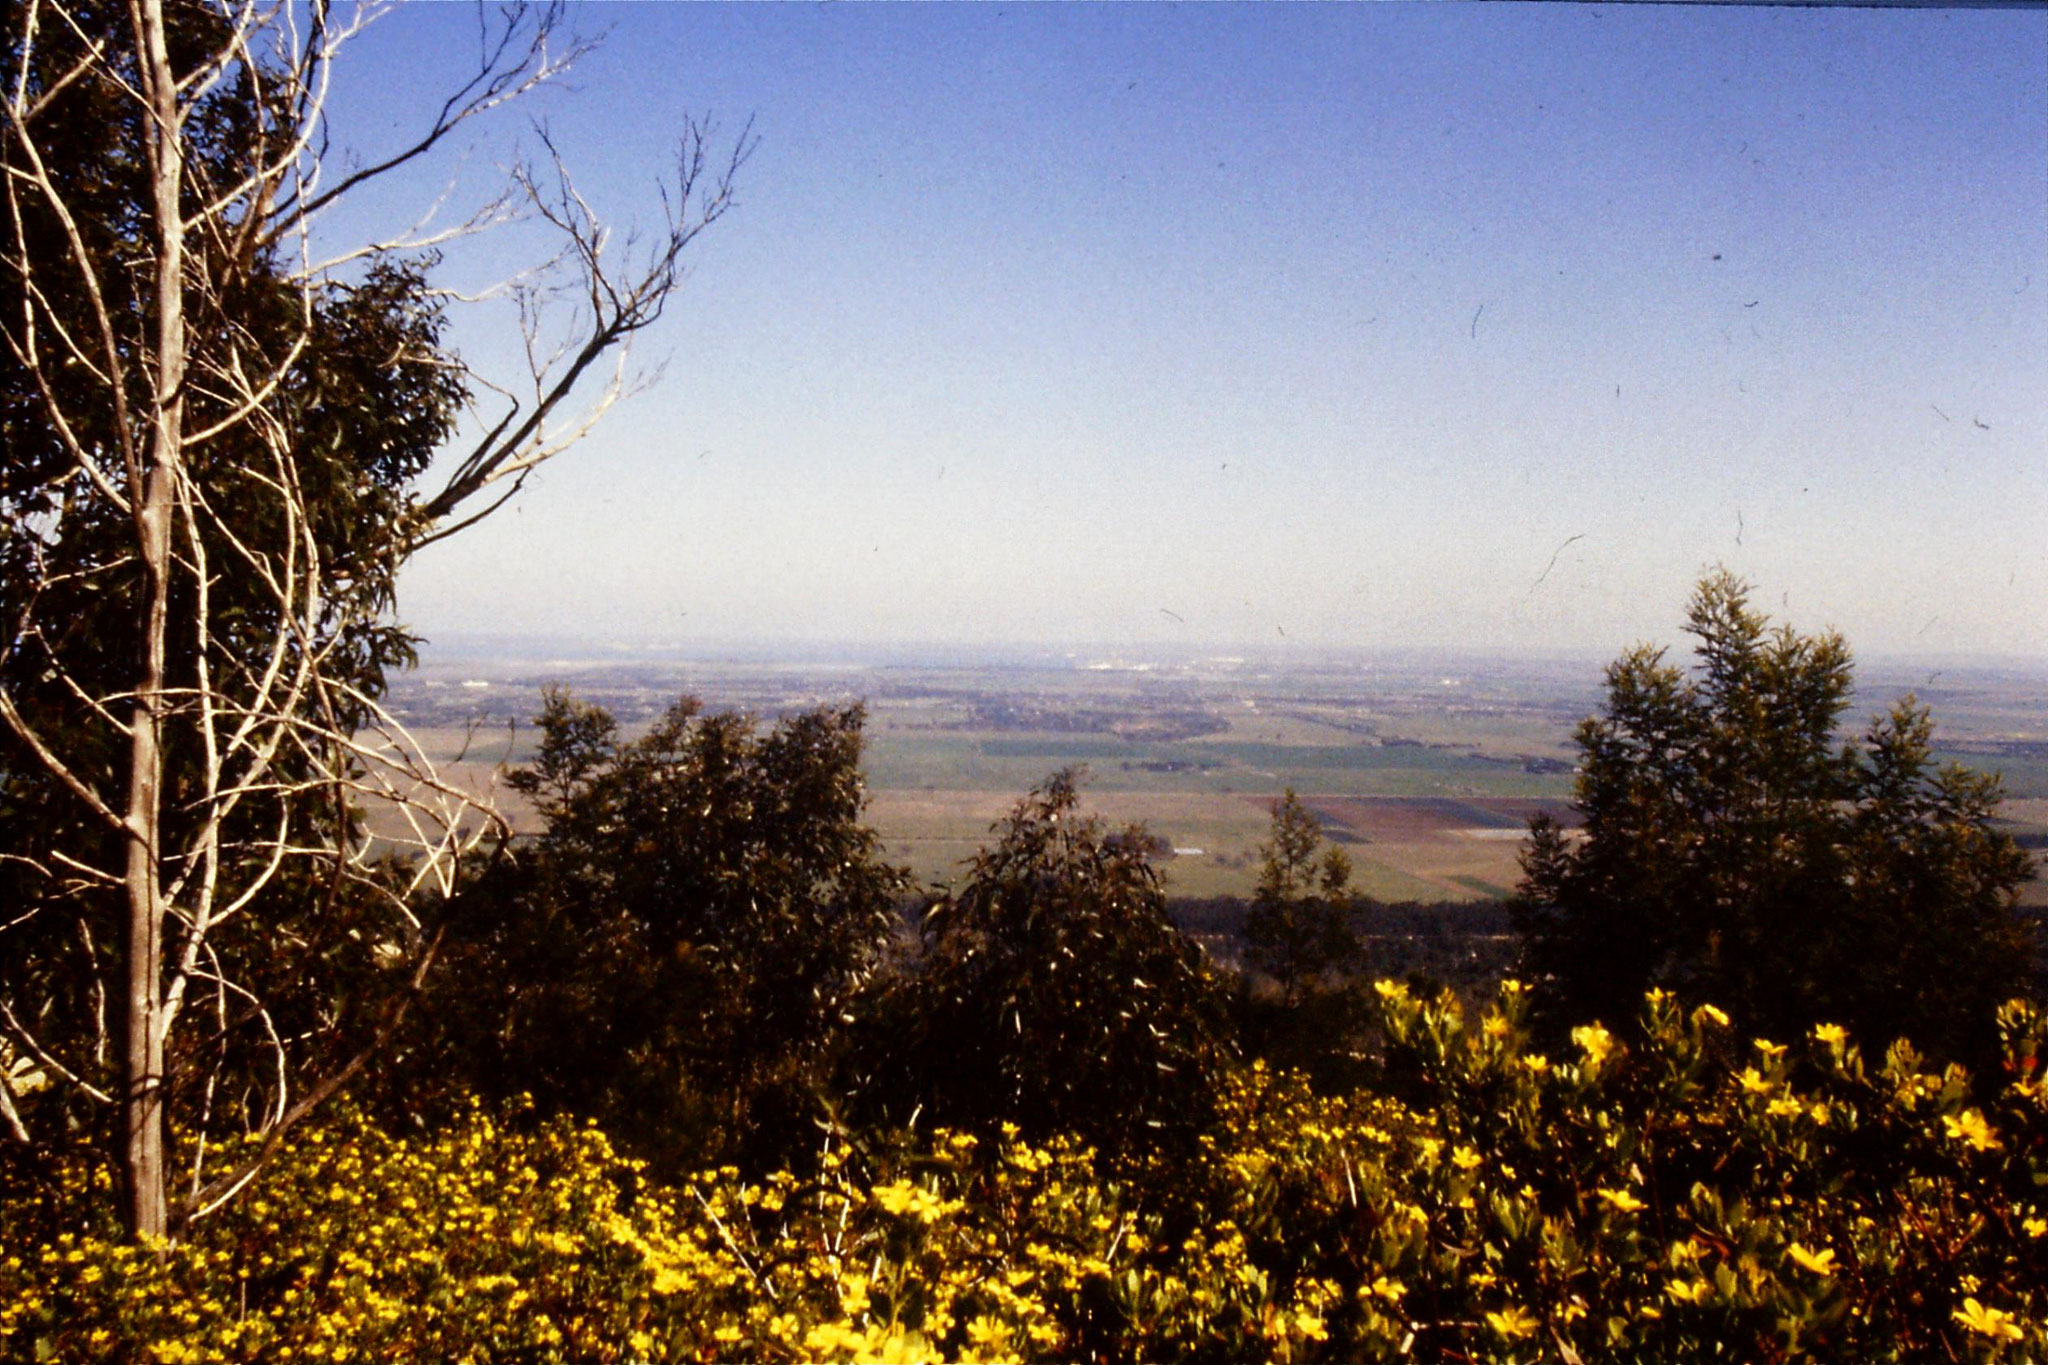 17/9/1990: 18: looking towards Pt Flinders